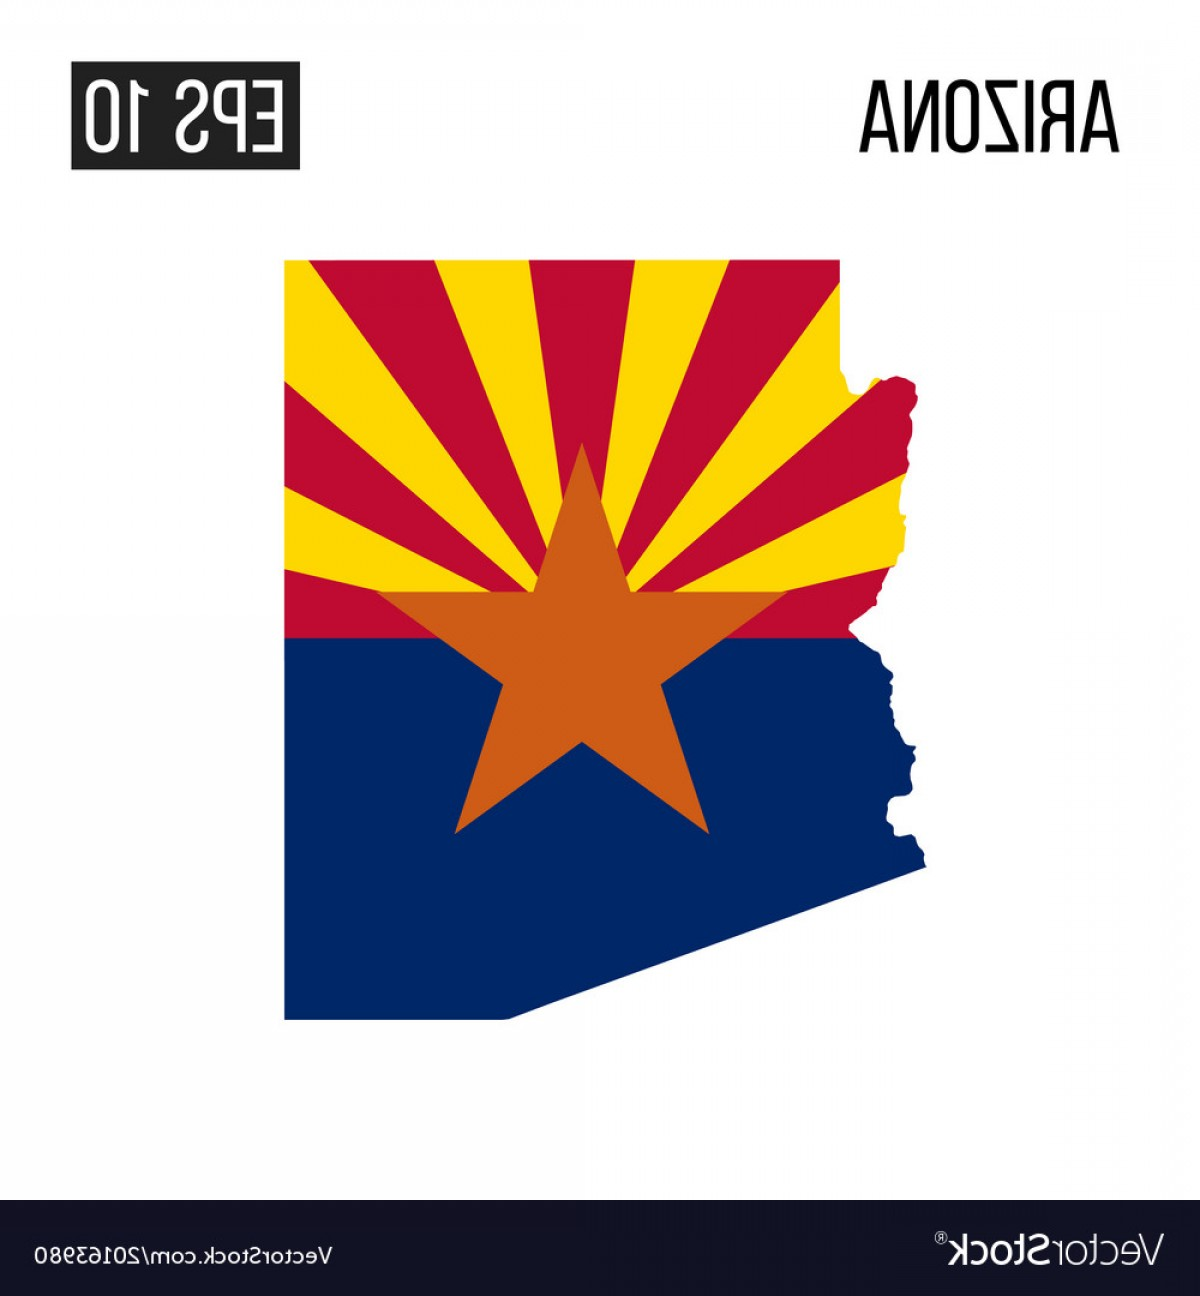 Arizona Flag Vector: Arizona Map Border With Flag Eps Vector